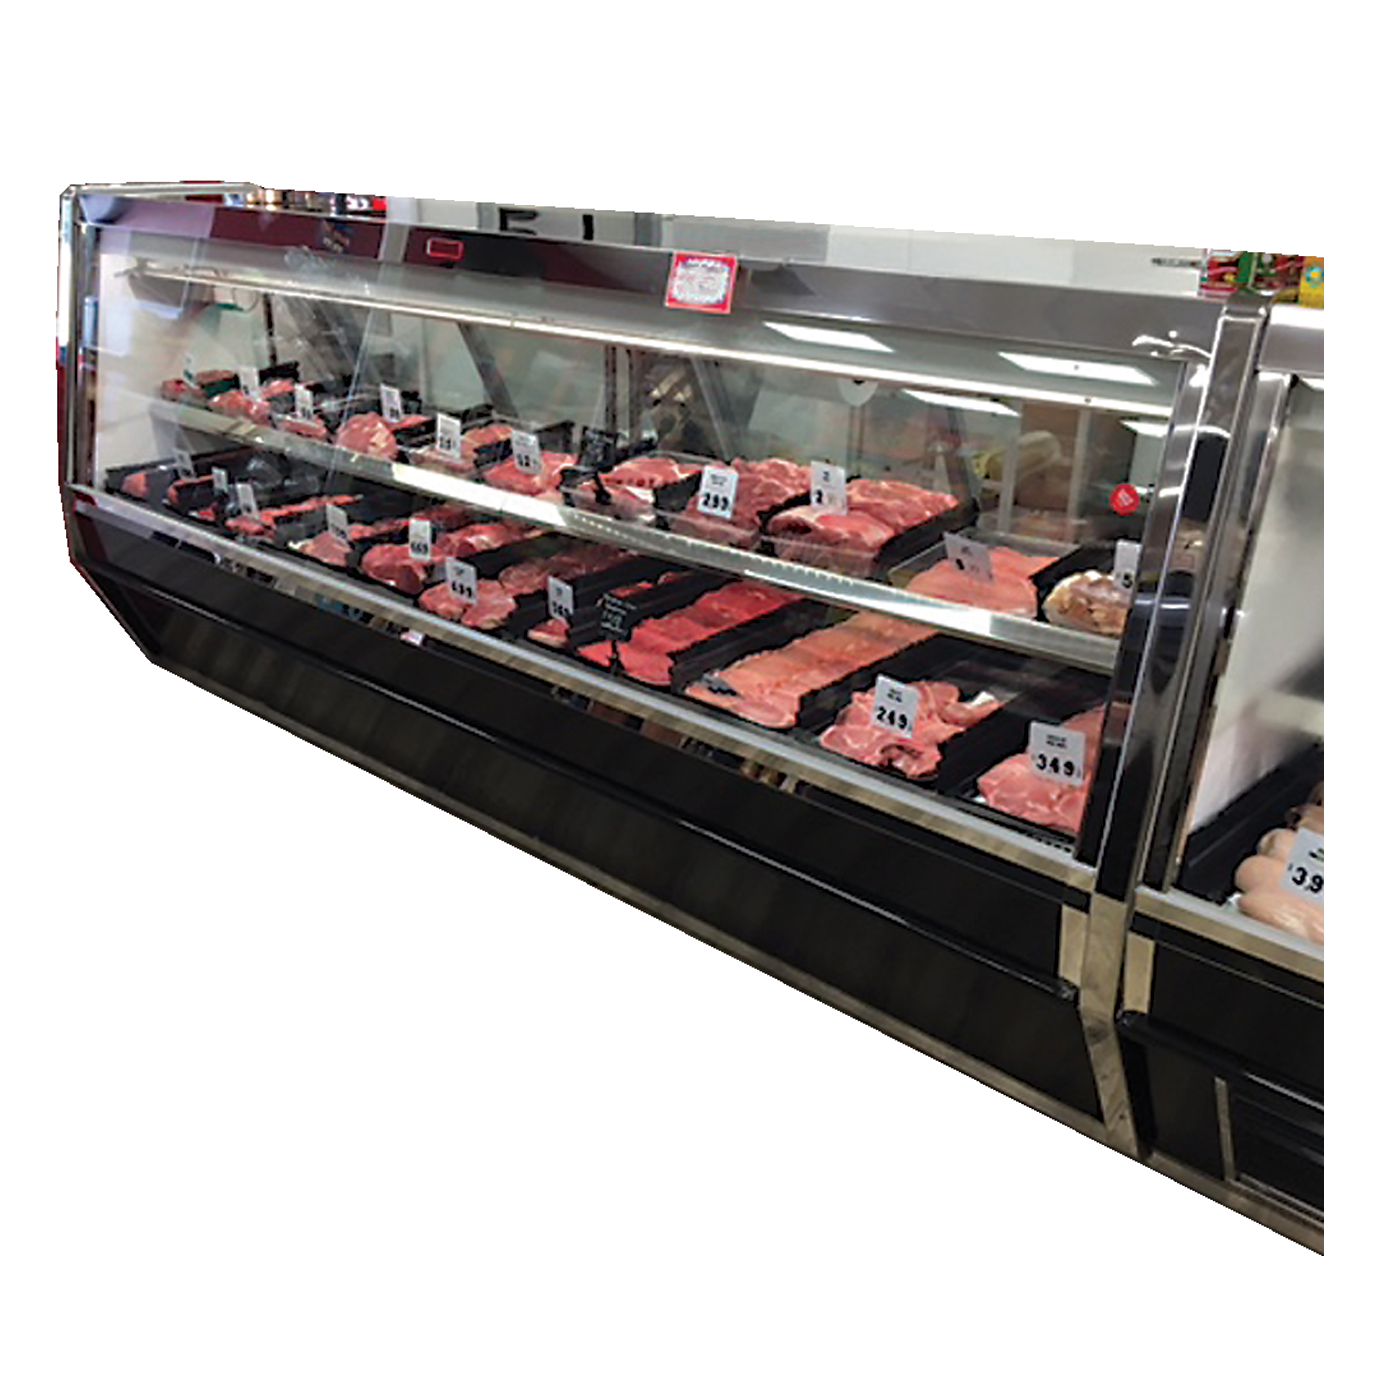 Howard-McCray R-CMS40E-12-BE-LED display case, red meat deli